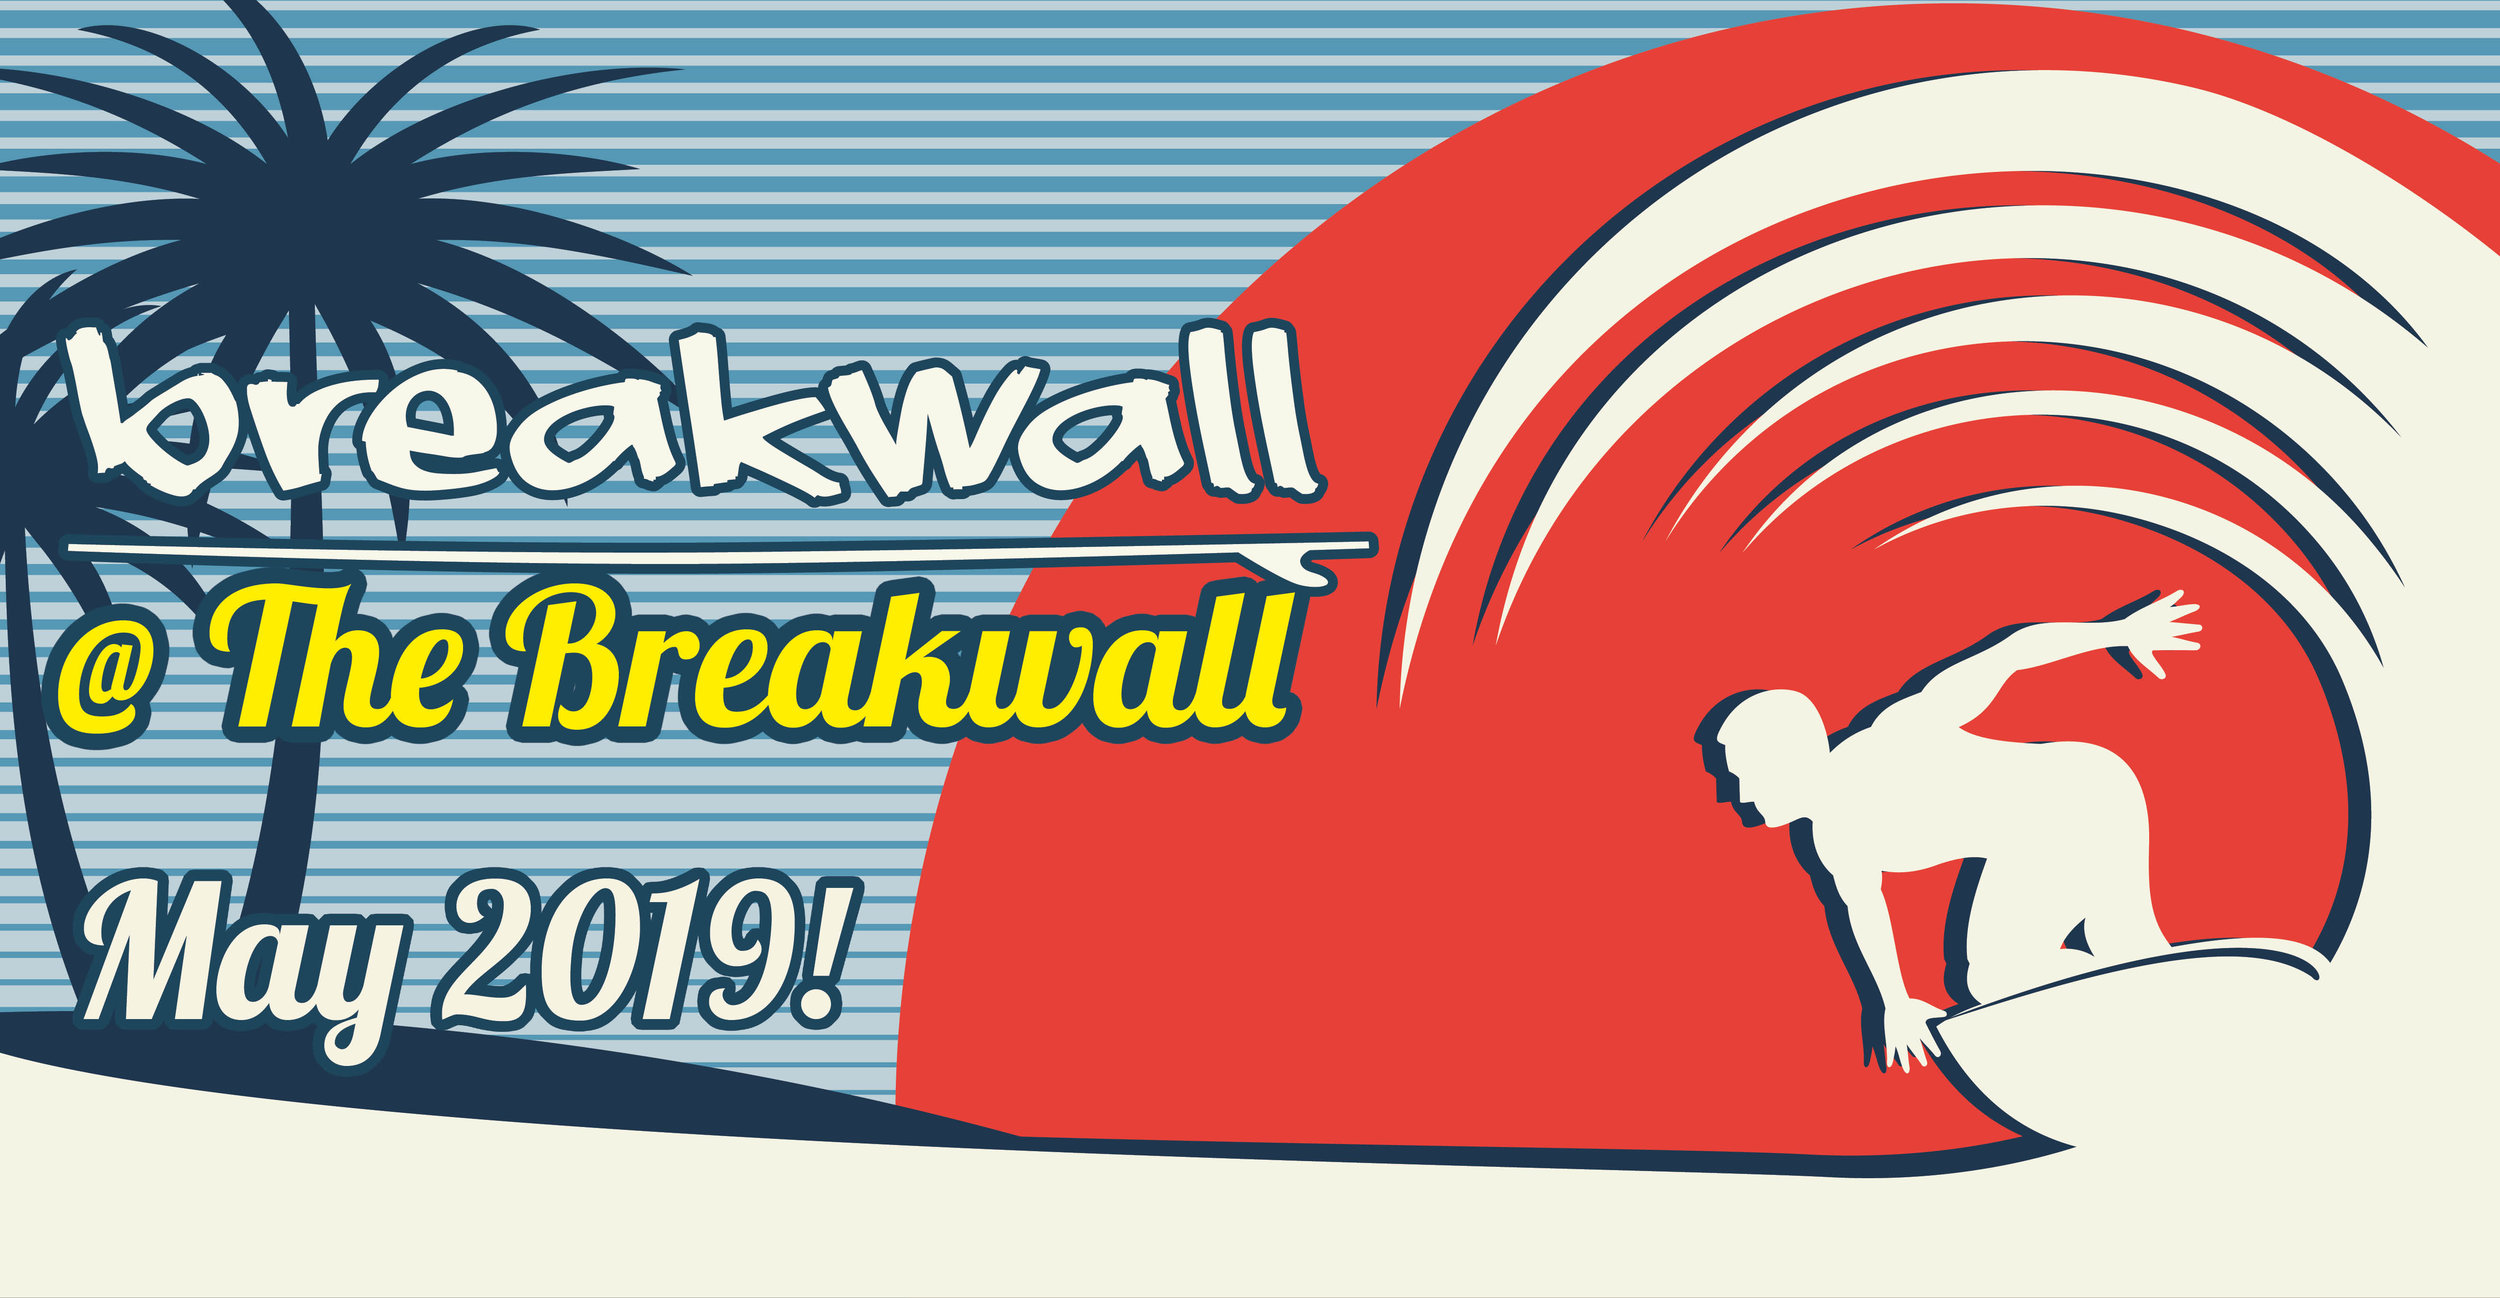 04-25 BREAKWALL FACEBOOK 2019.jpg